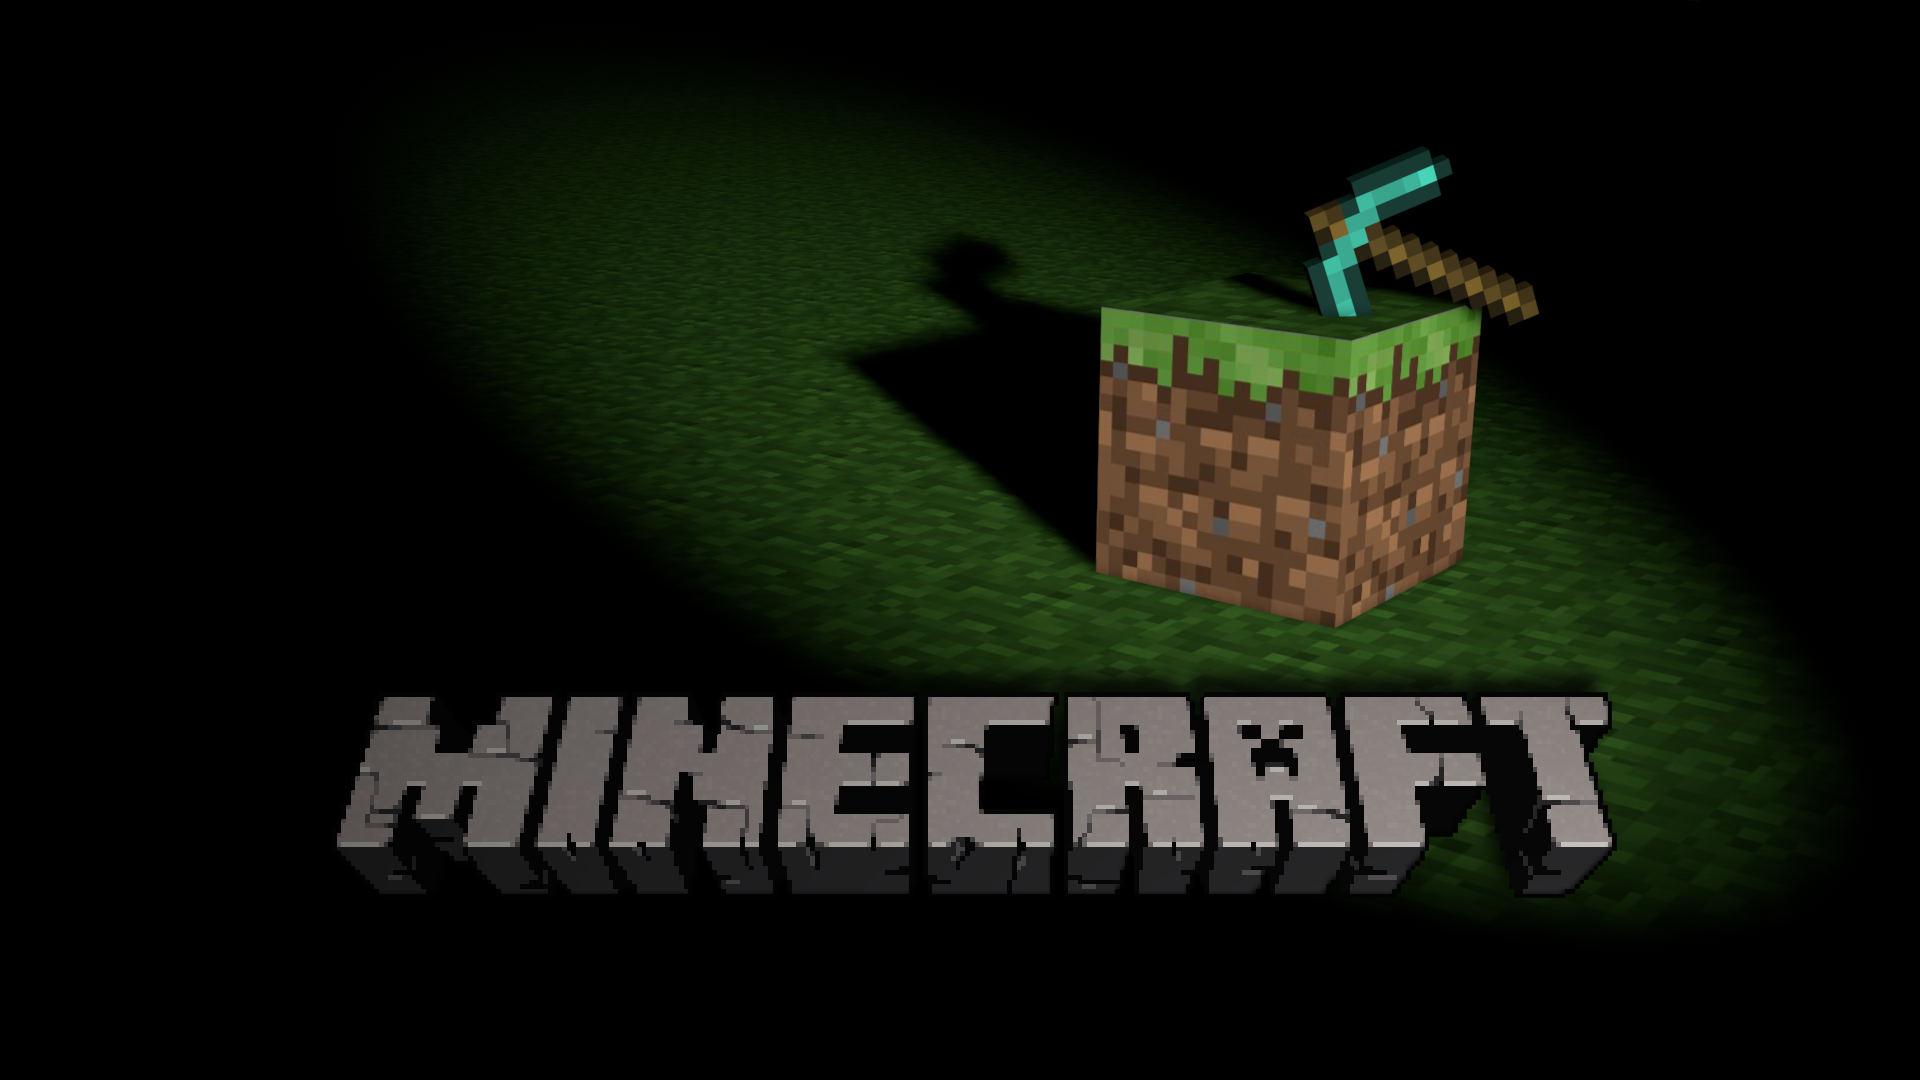 Free Download Cool Minecraft Backgrounds For Your Phone Bc